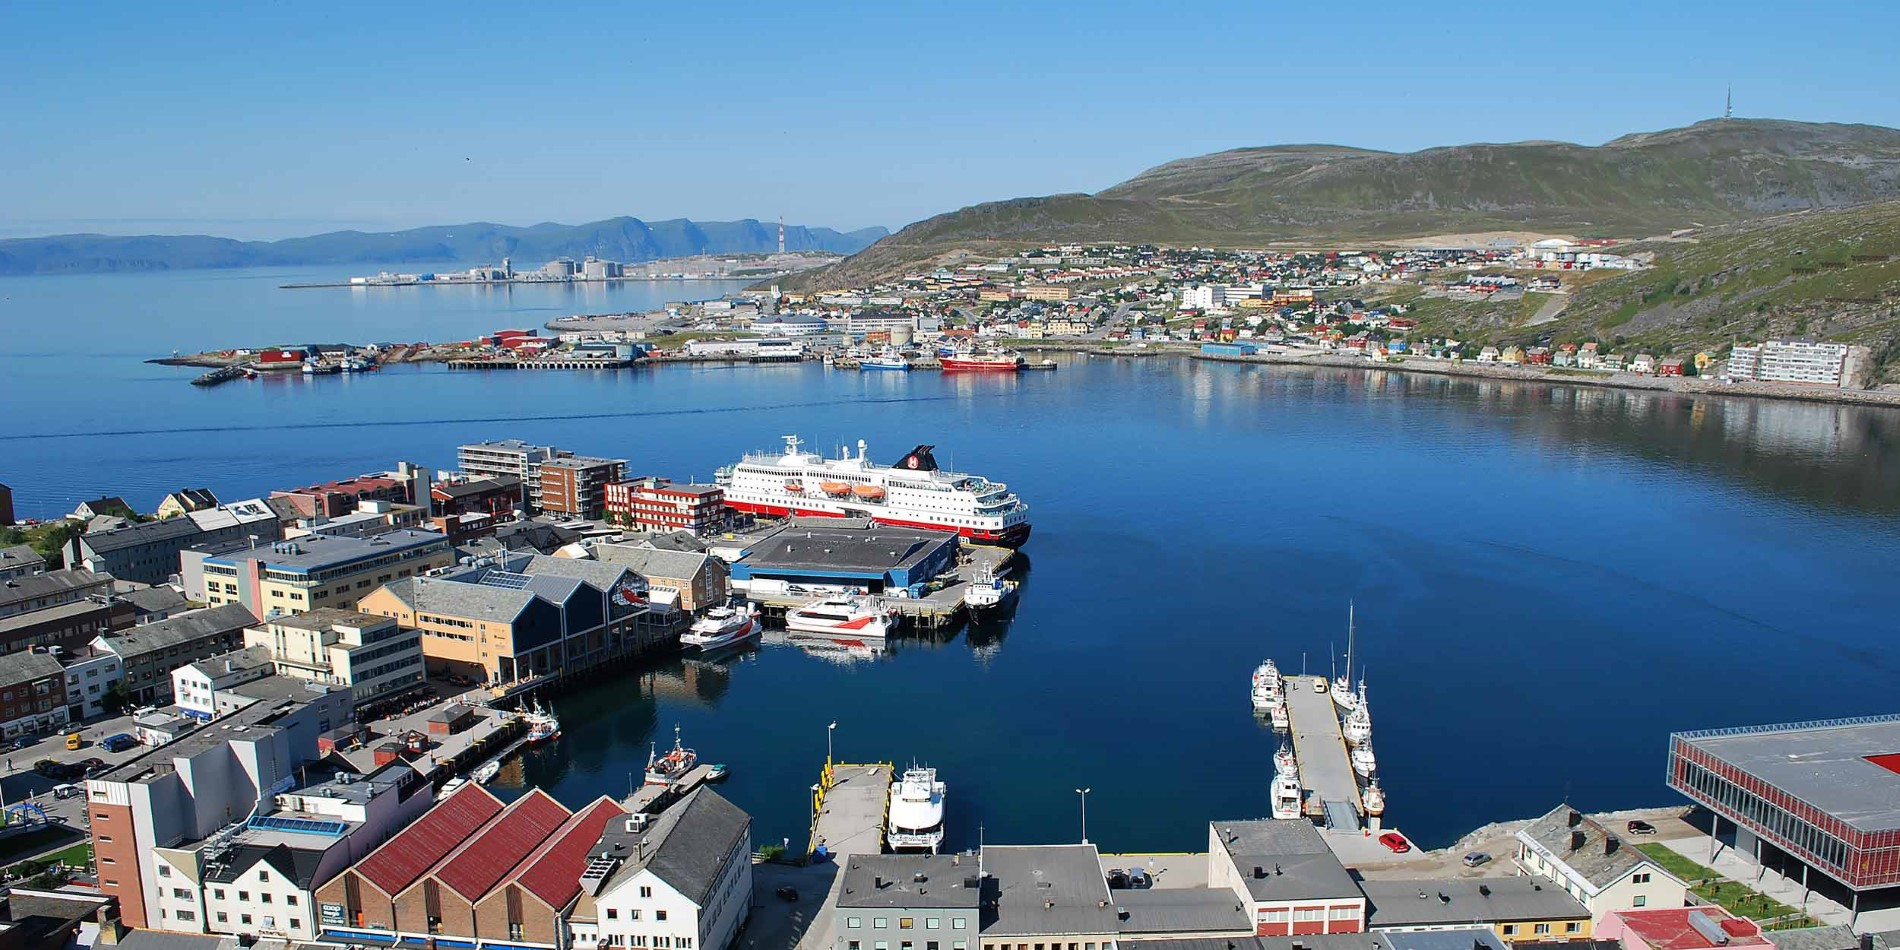 The port of Hammerfest